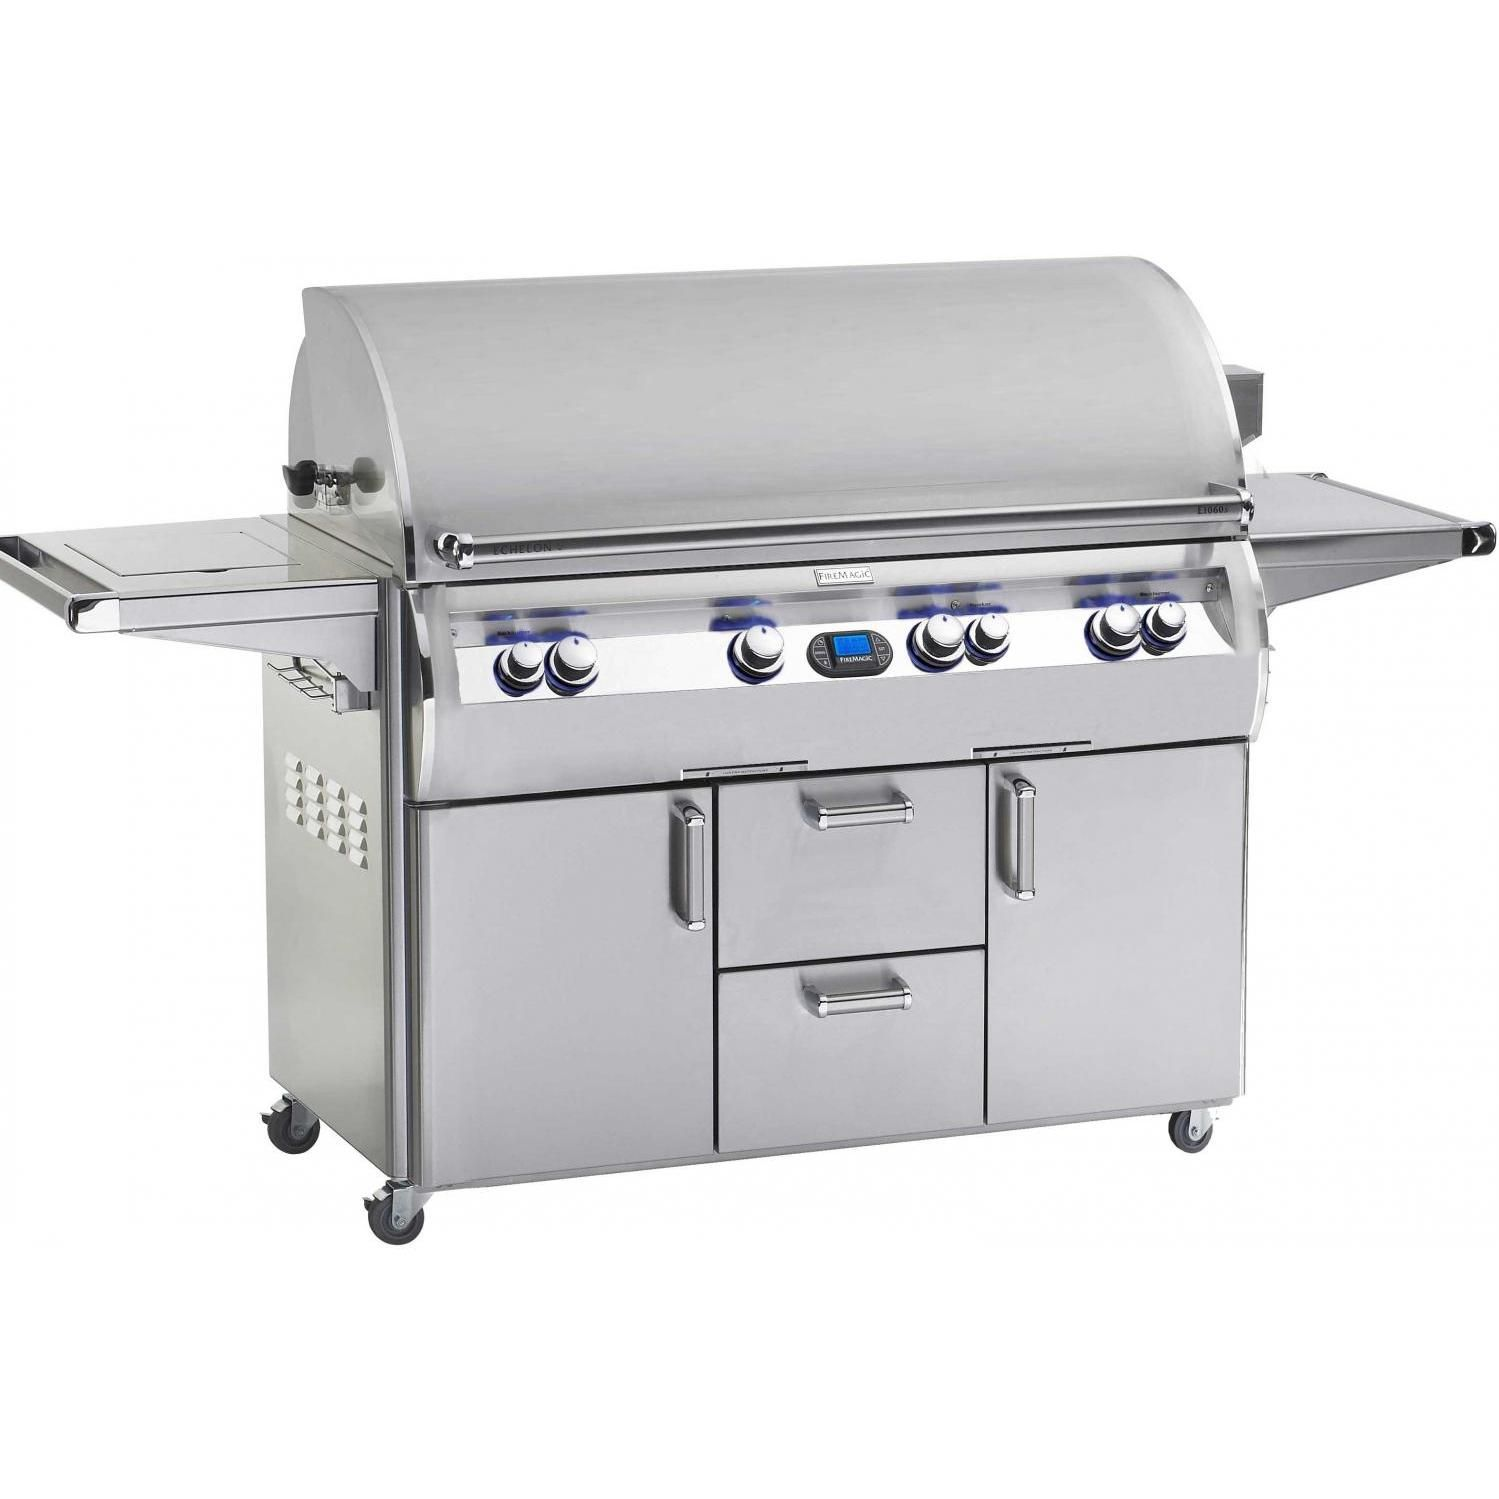 Fire Magic Echelon Diamond E1060 Gas Grill With Single Side Burner On Cart. Only $8,900-$11,000 US.  Stainless Steel finish, 4 Burners, 235,000 Total BTU's, 1,432 (Square Inches) Total Cooking Area.  Manual ignition tubes for match lighting Built-in digital LCD meat and multi-zone grill thermometer. Single Side Burner, Smoker Burner, Infrared Main Burner.